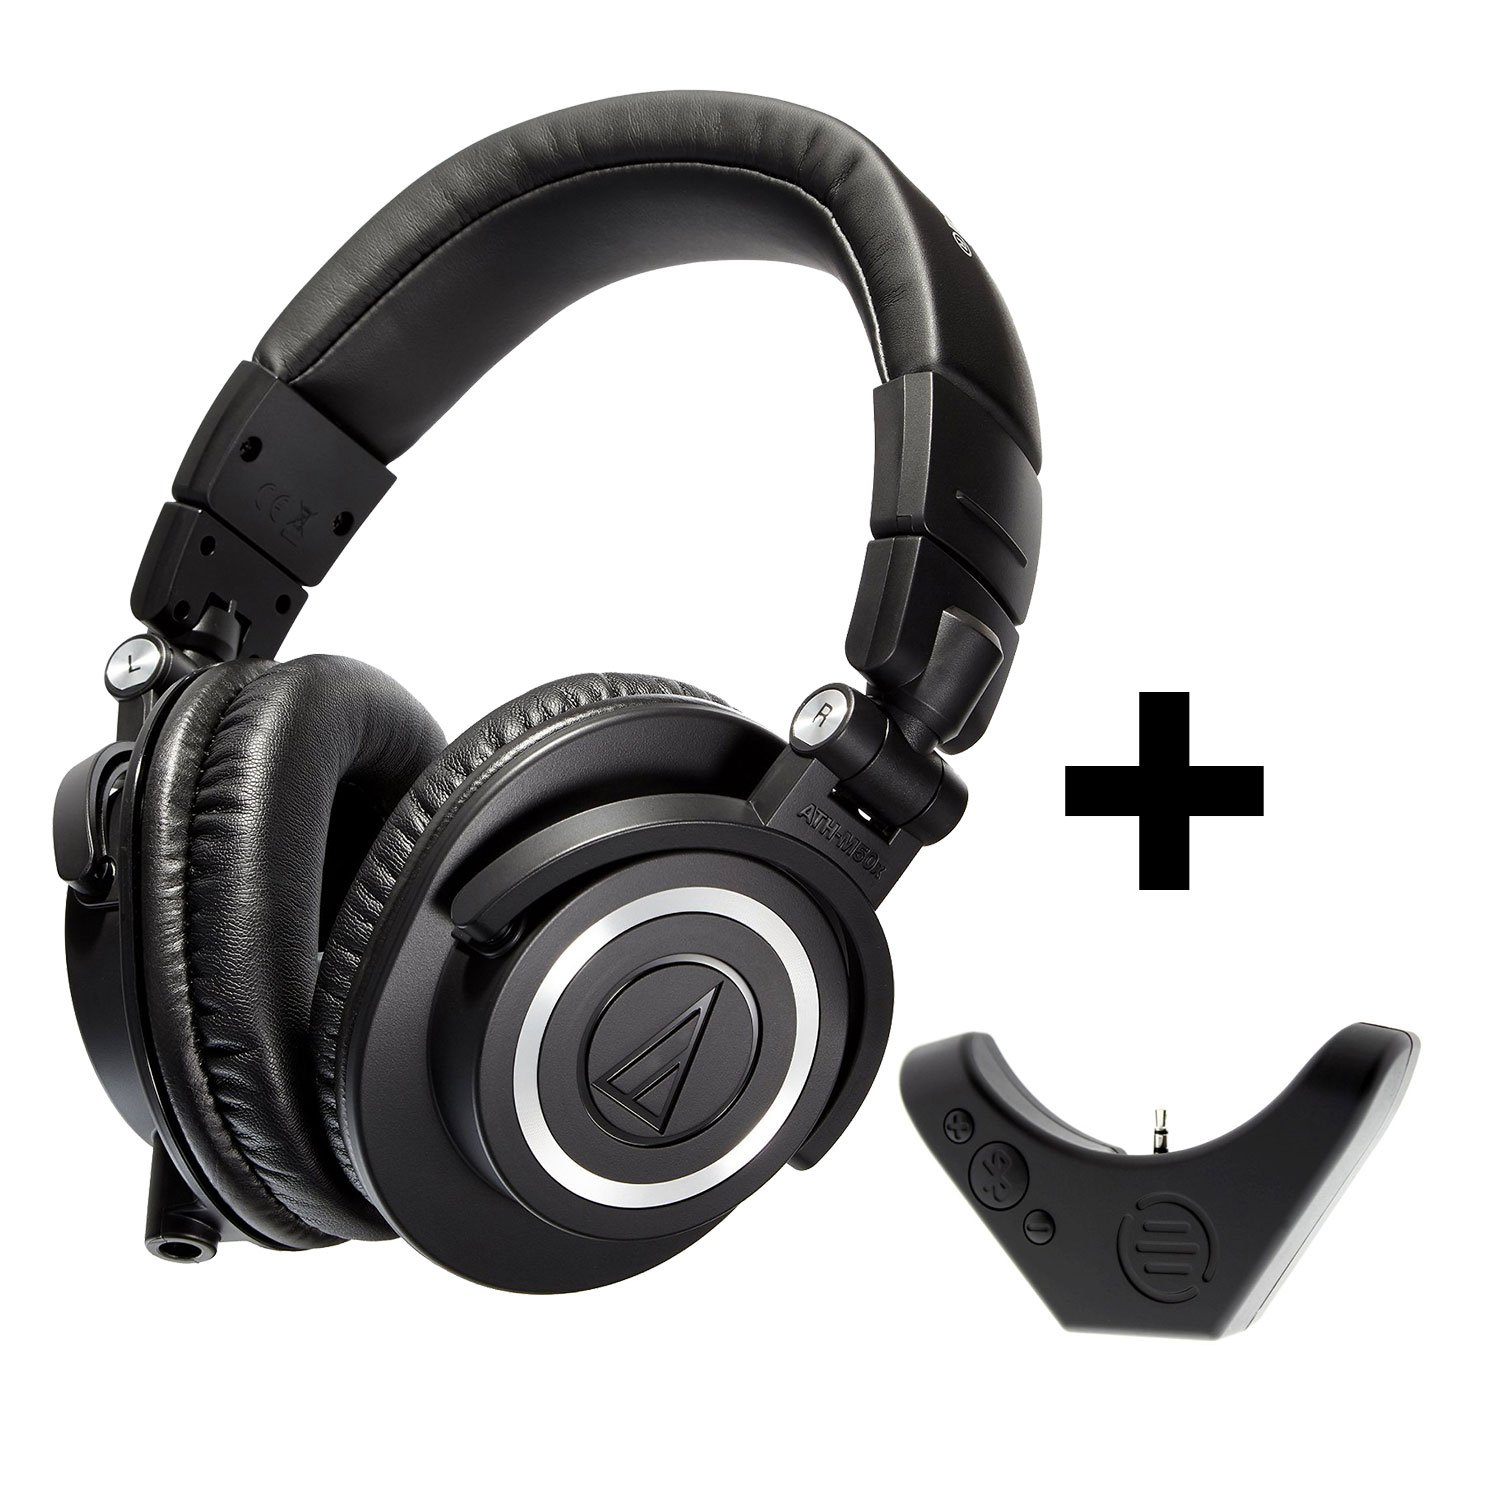 Audio-Technica ATH-M50x Professional Studio Monitor Headphones with Bluetooth Adapter-Amplifier BAL-M50X by Audio-Technica